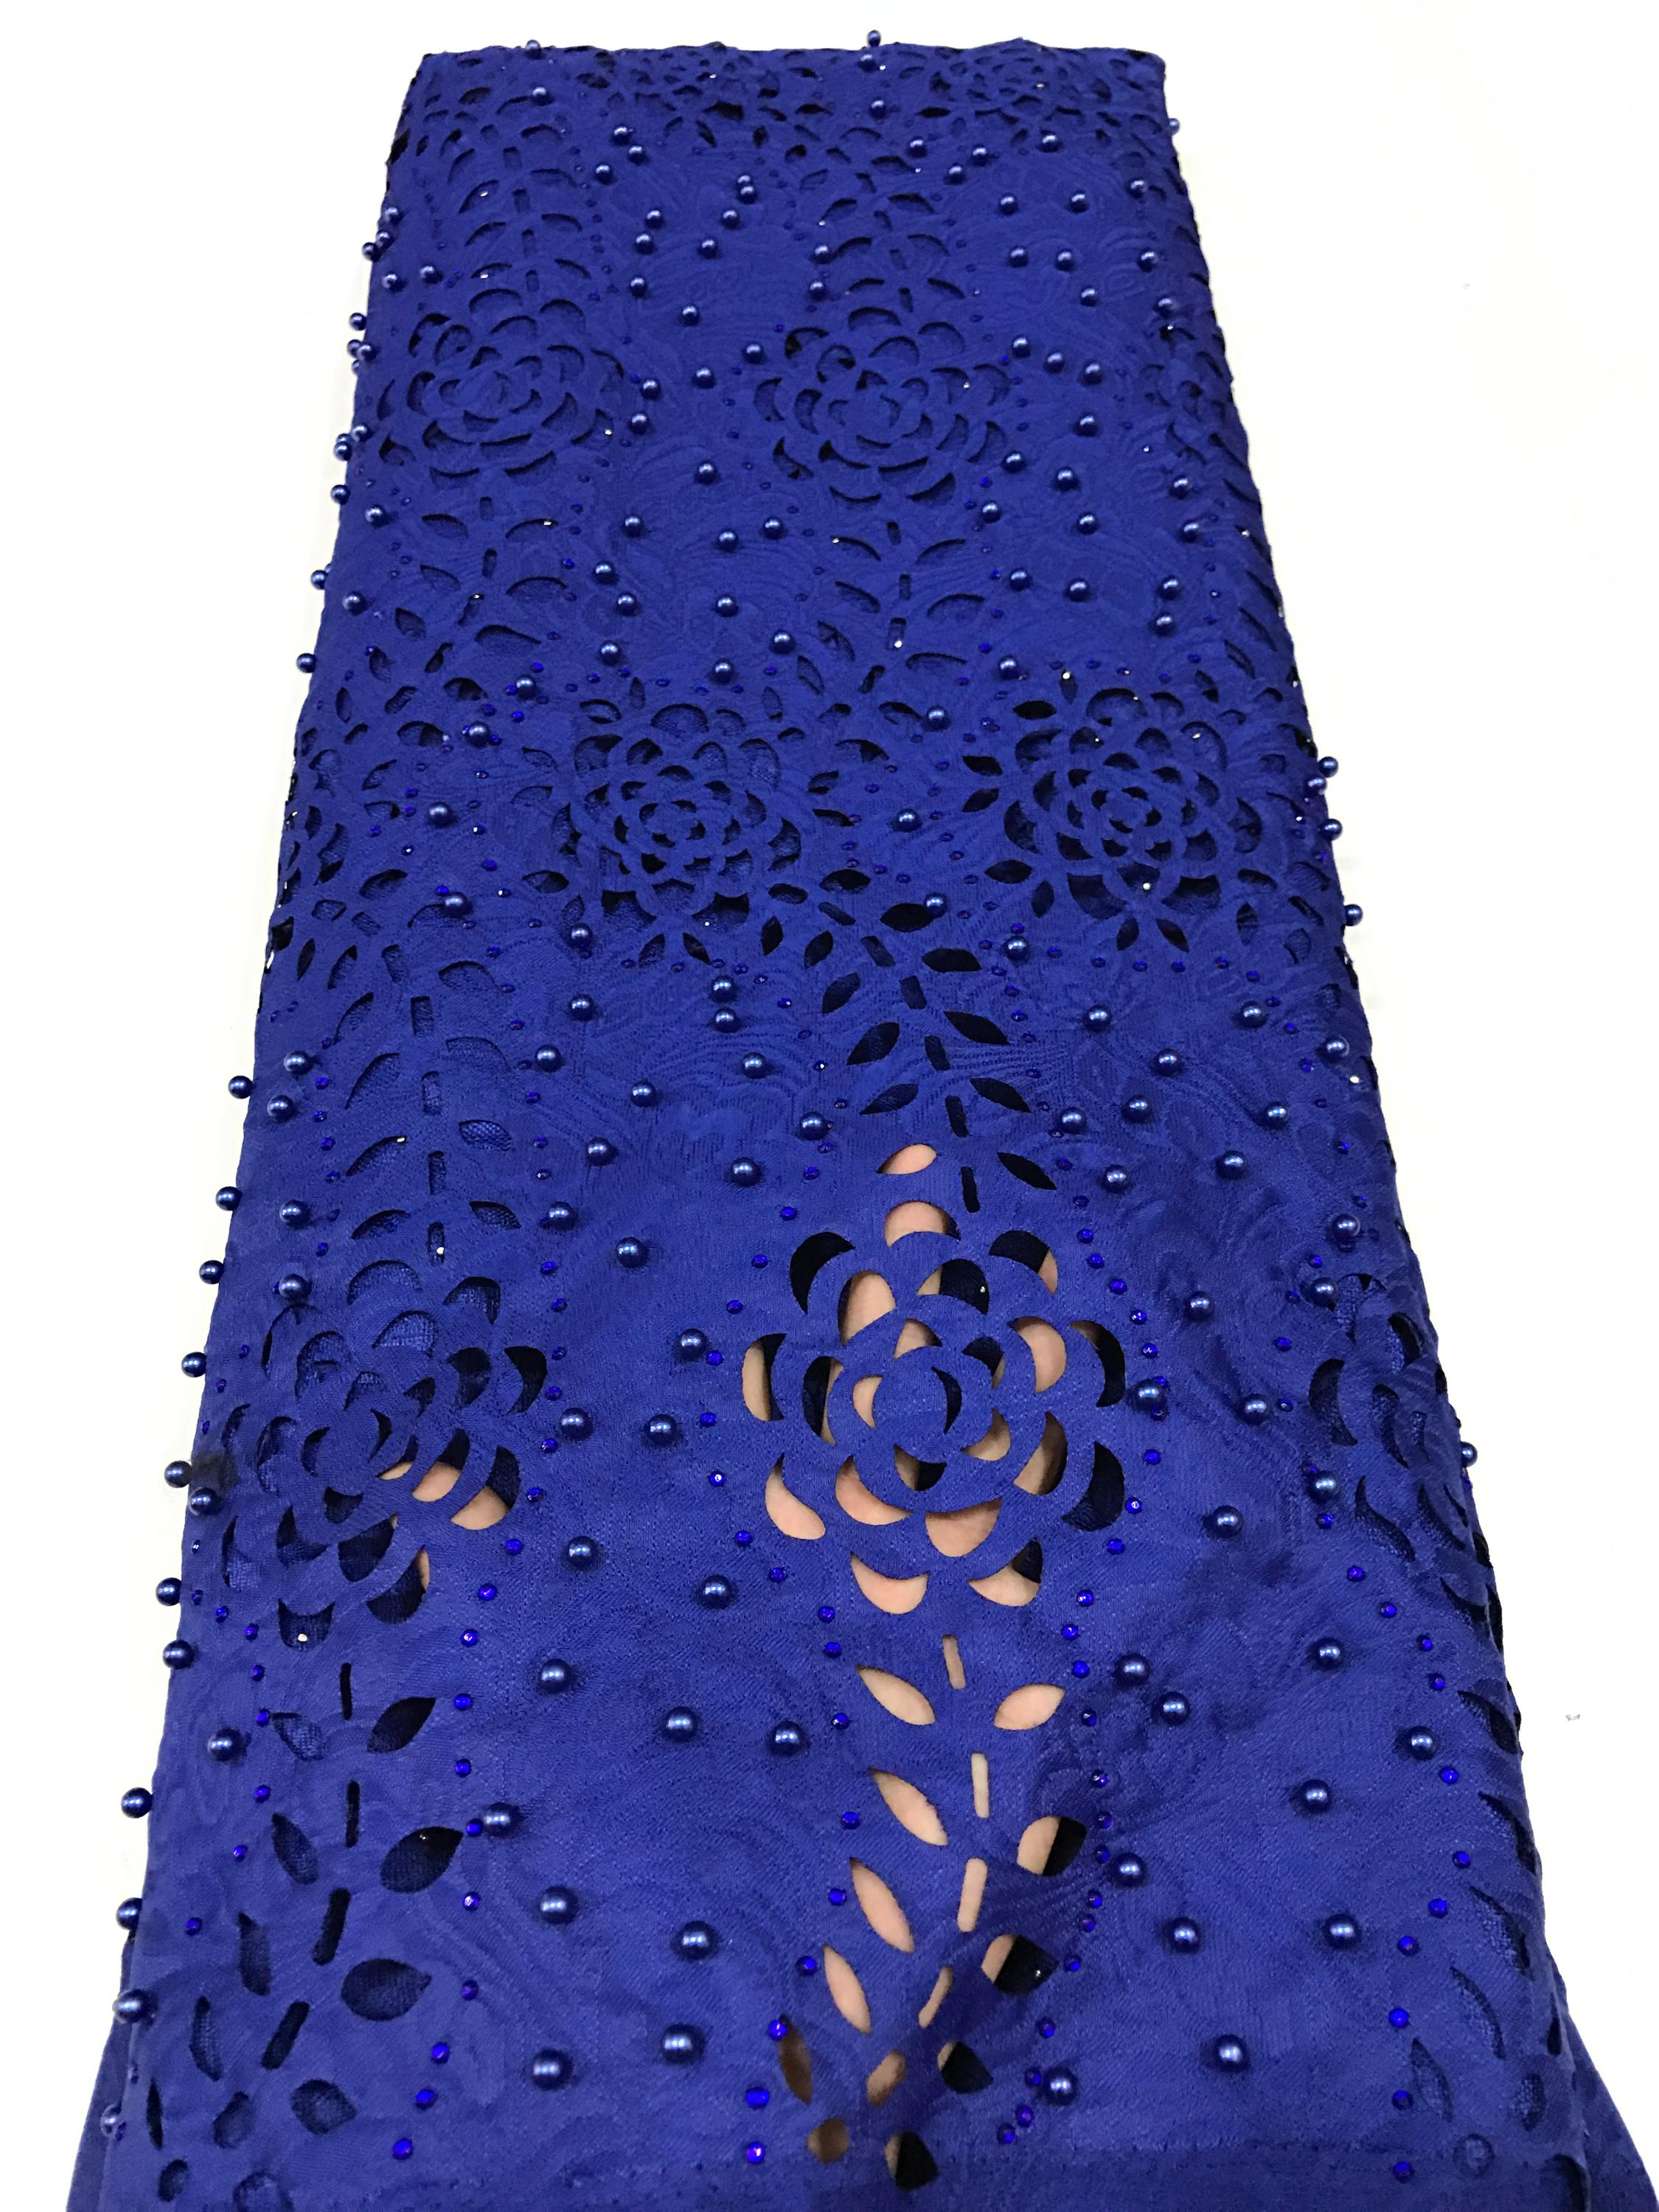 2017 African laser cut embroidery lace fabric for ladies party /wedding